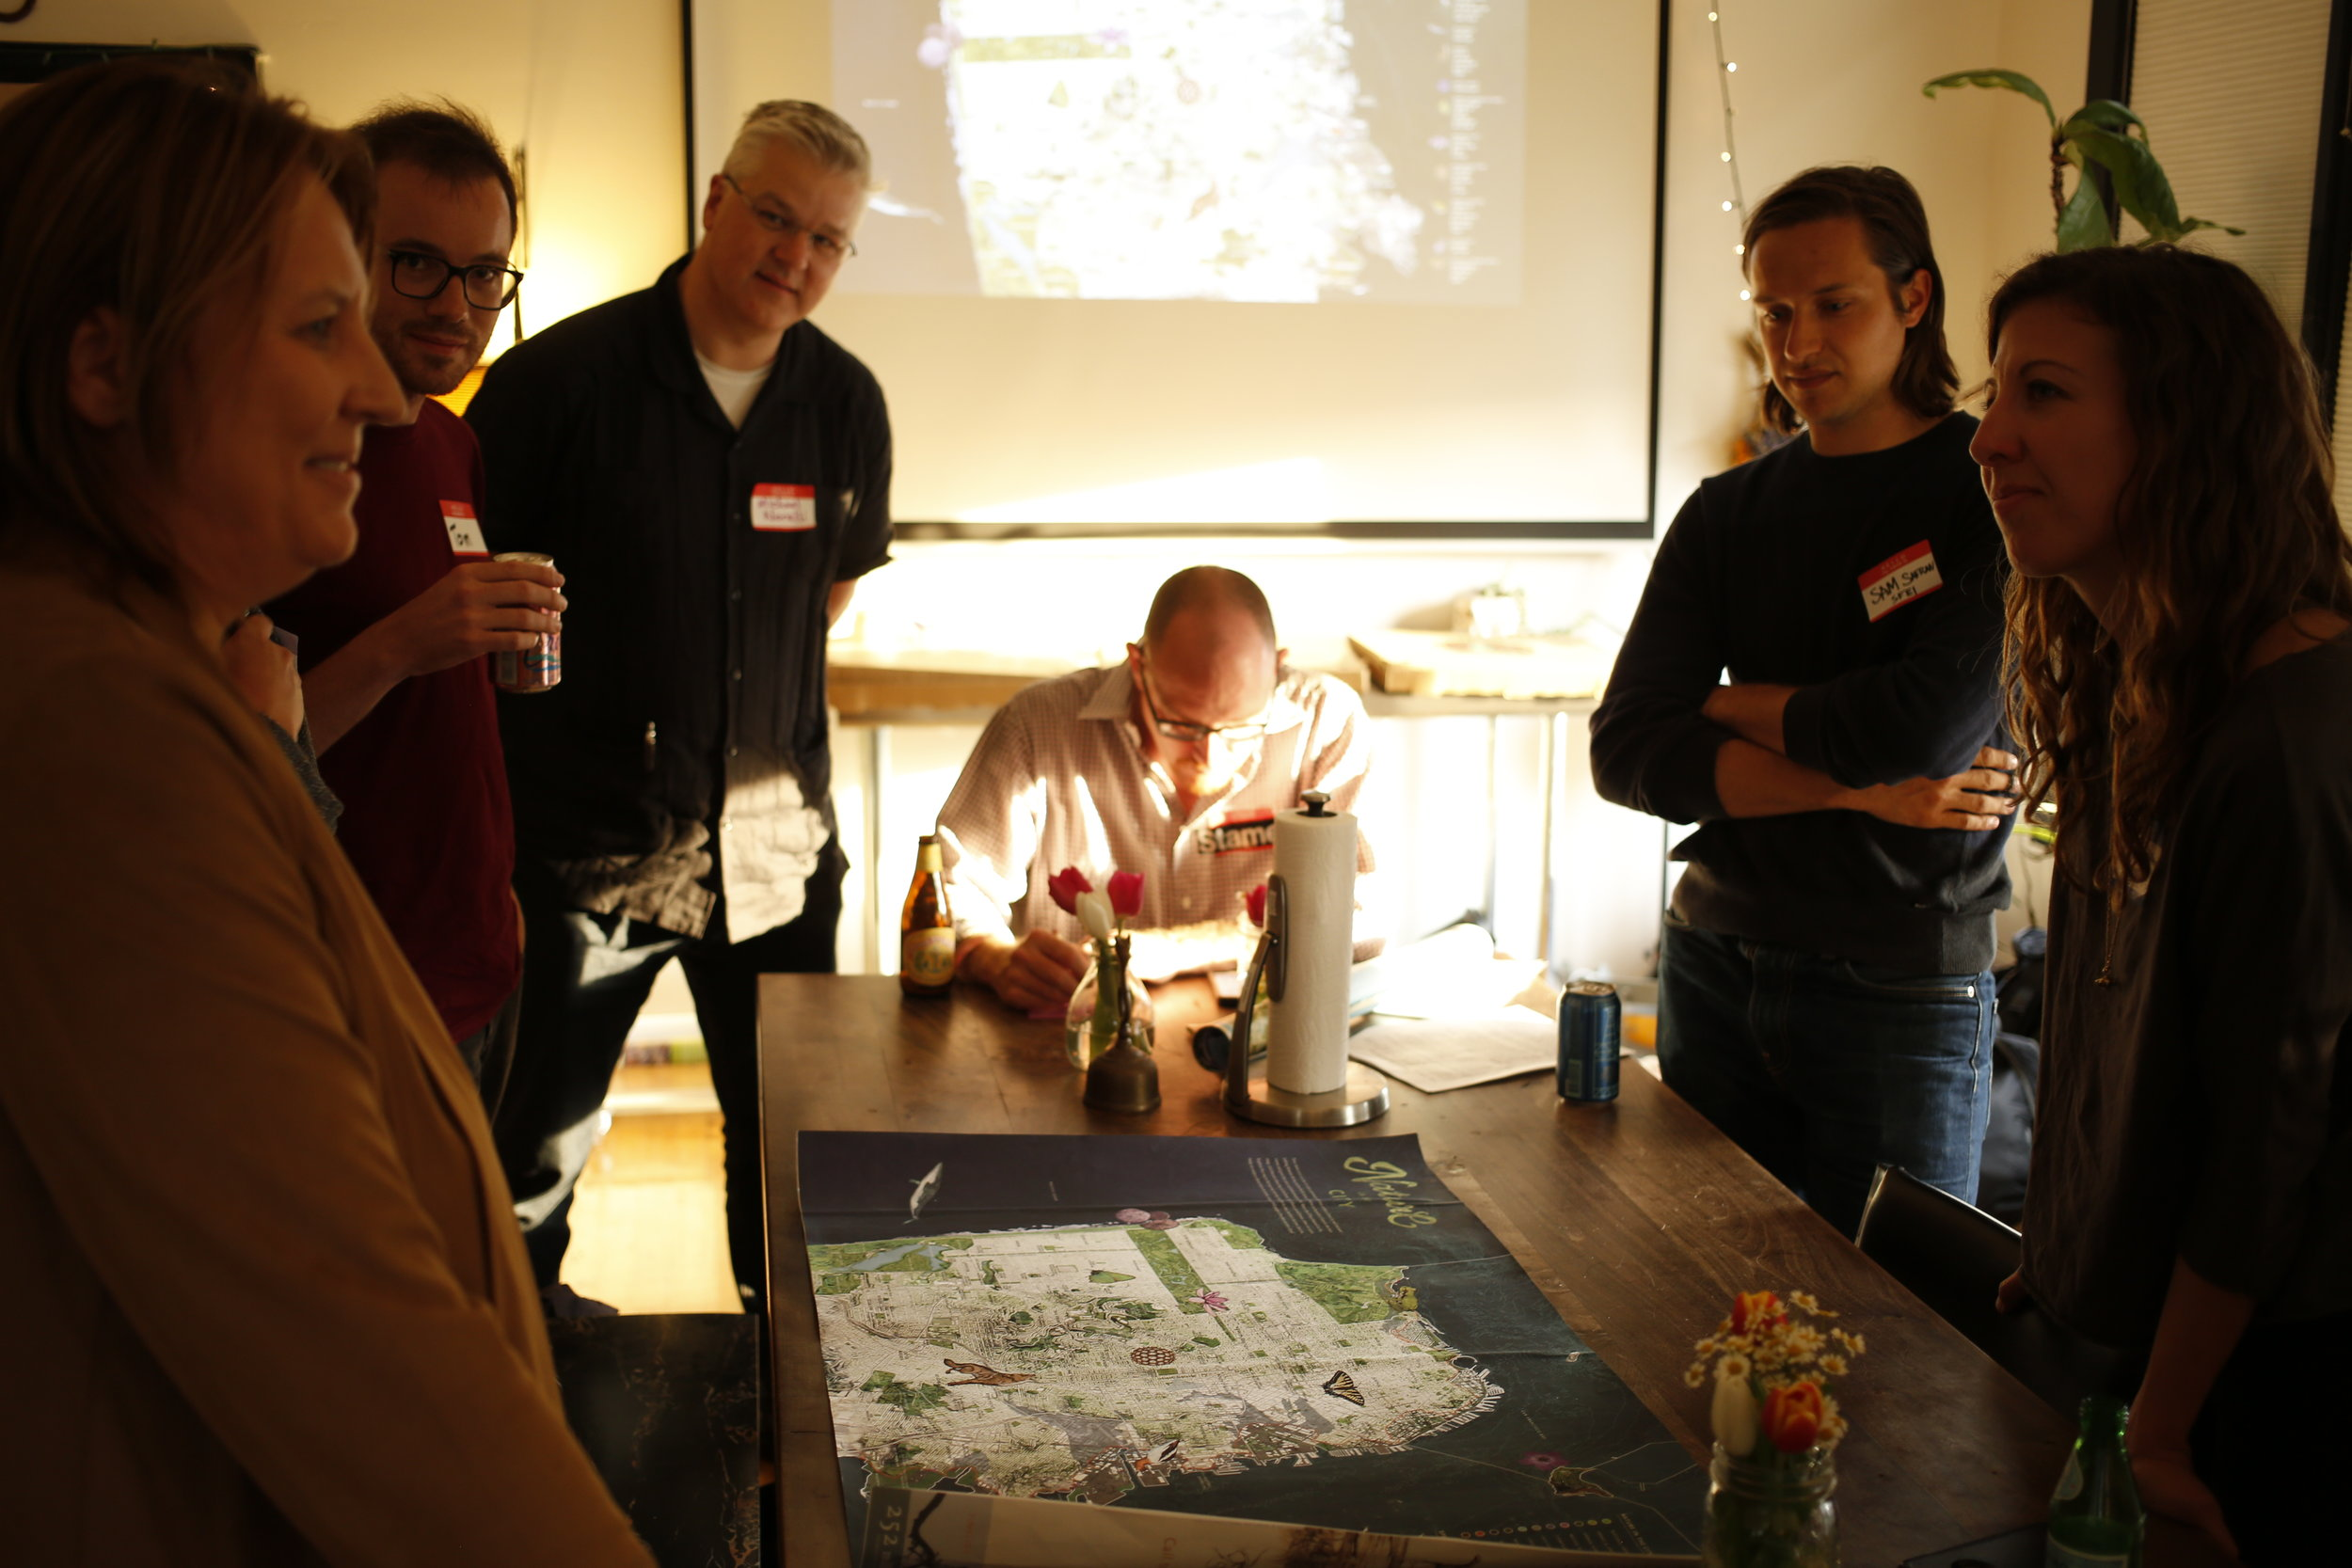 Planned, facilitated, and summarized insights from 3 feedback sessions held at Stamen Design and the Exploratorium with 90 participants. Photos courtesy of Nature in the City and by Matt Irving and ICI